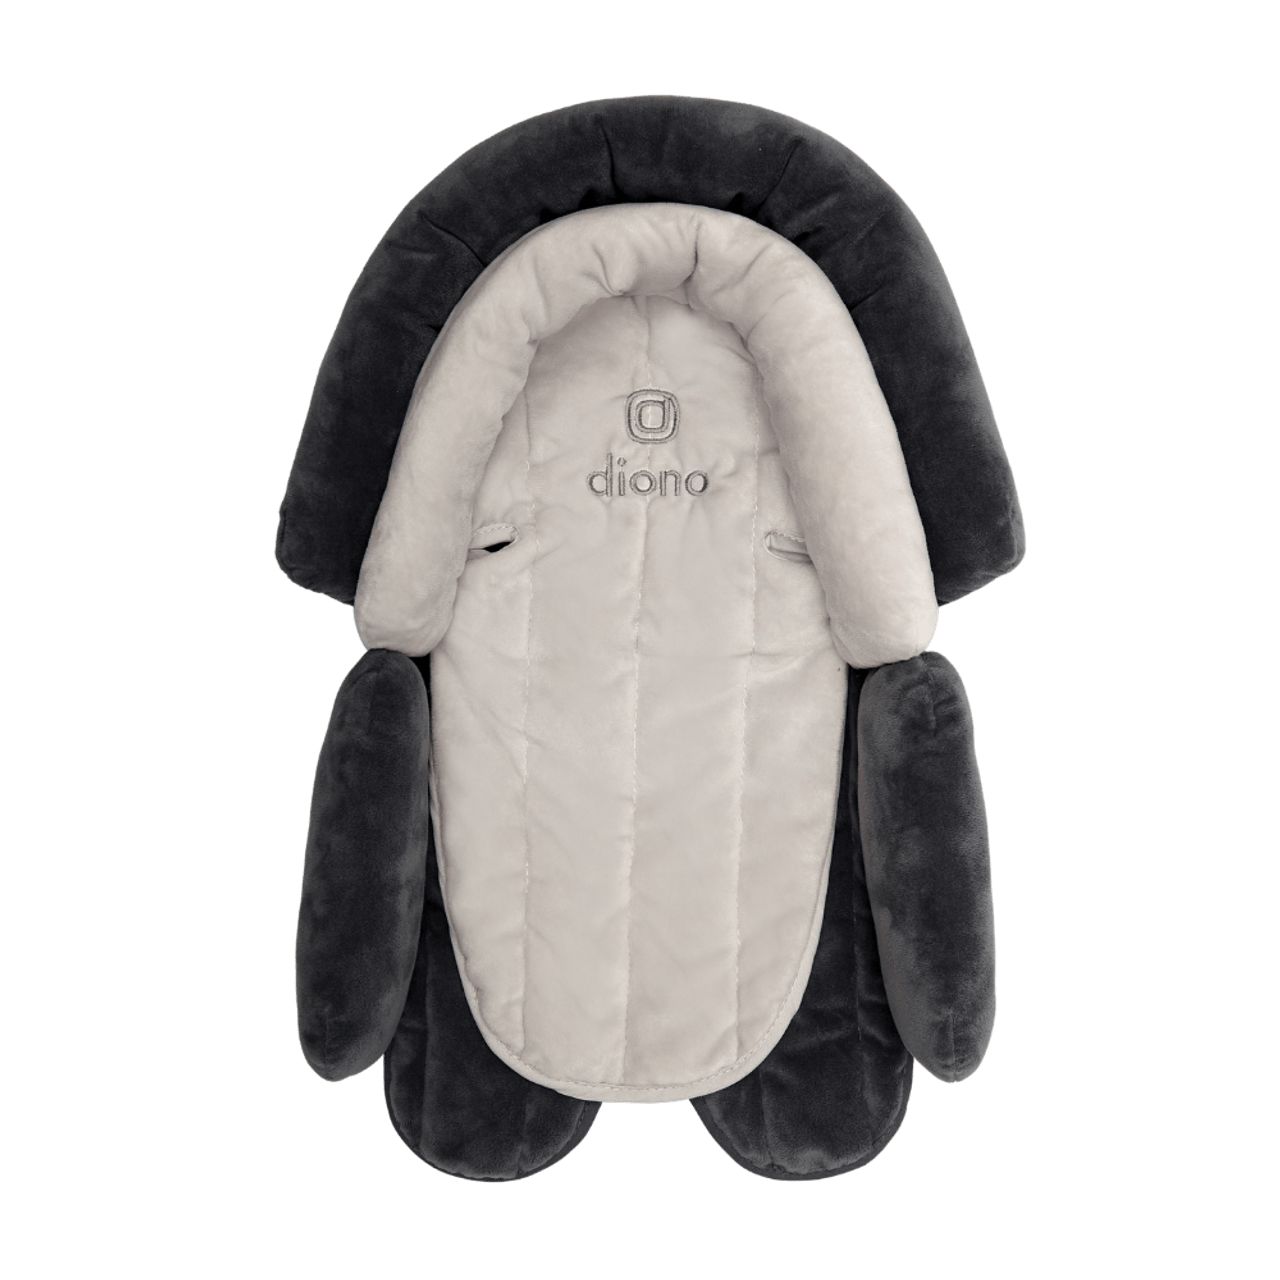 cuddle soft 2 in 1 head support